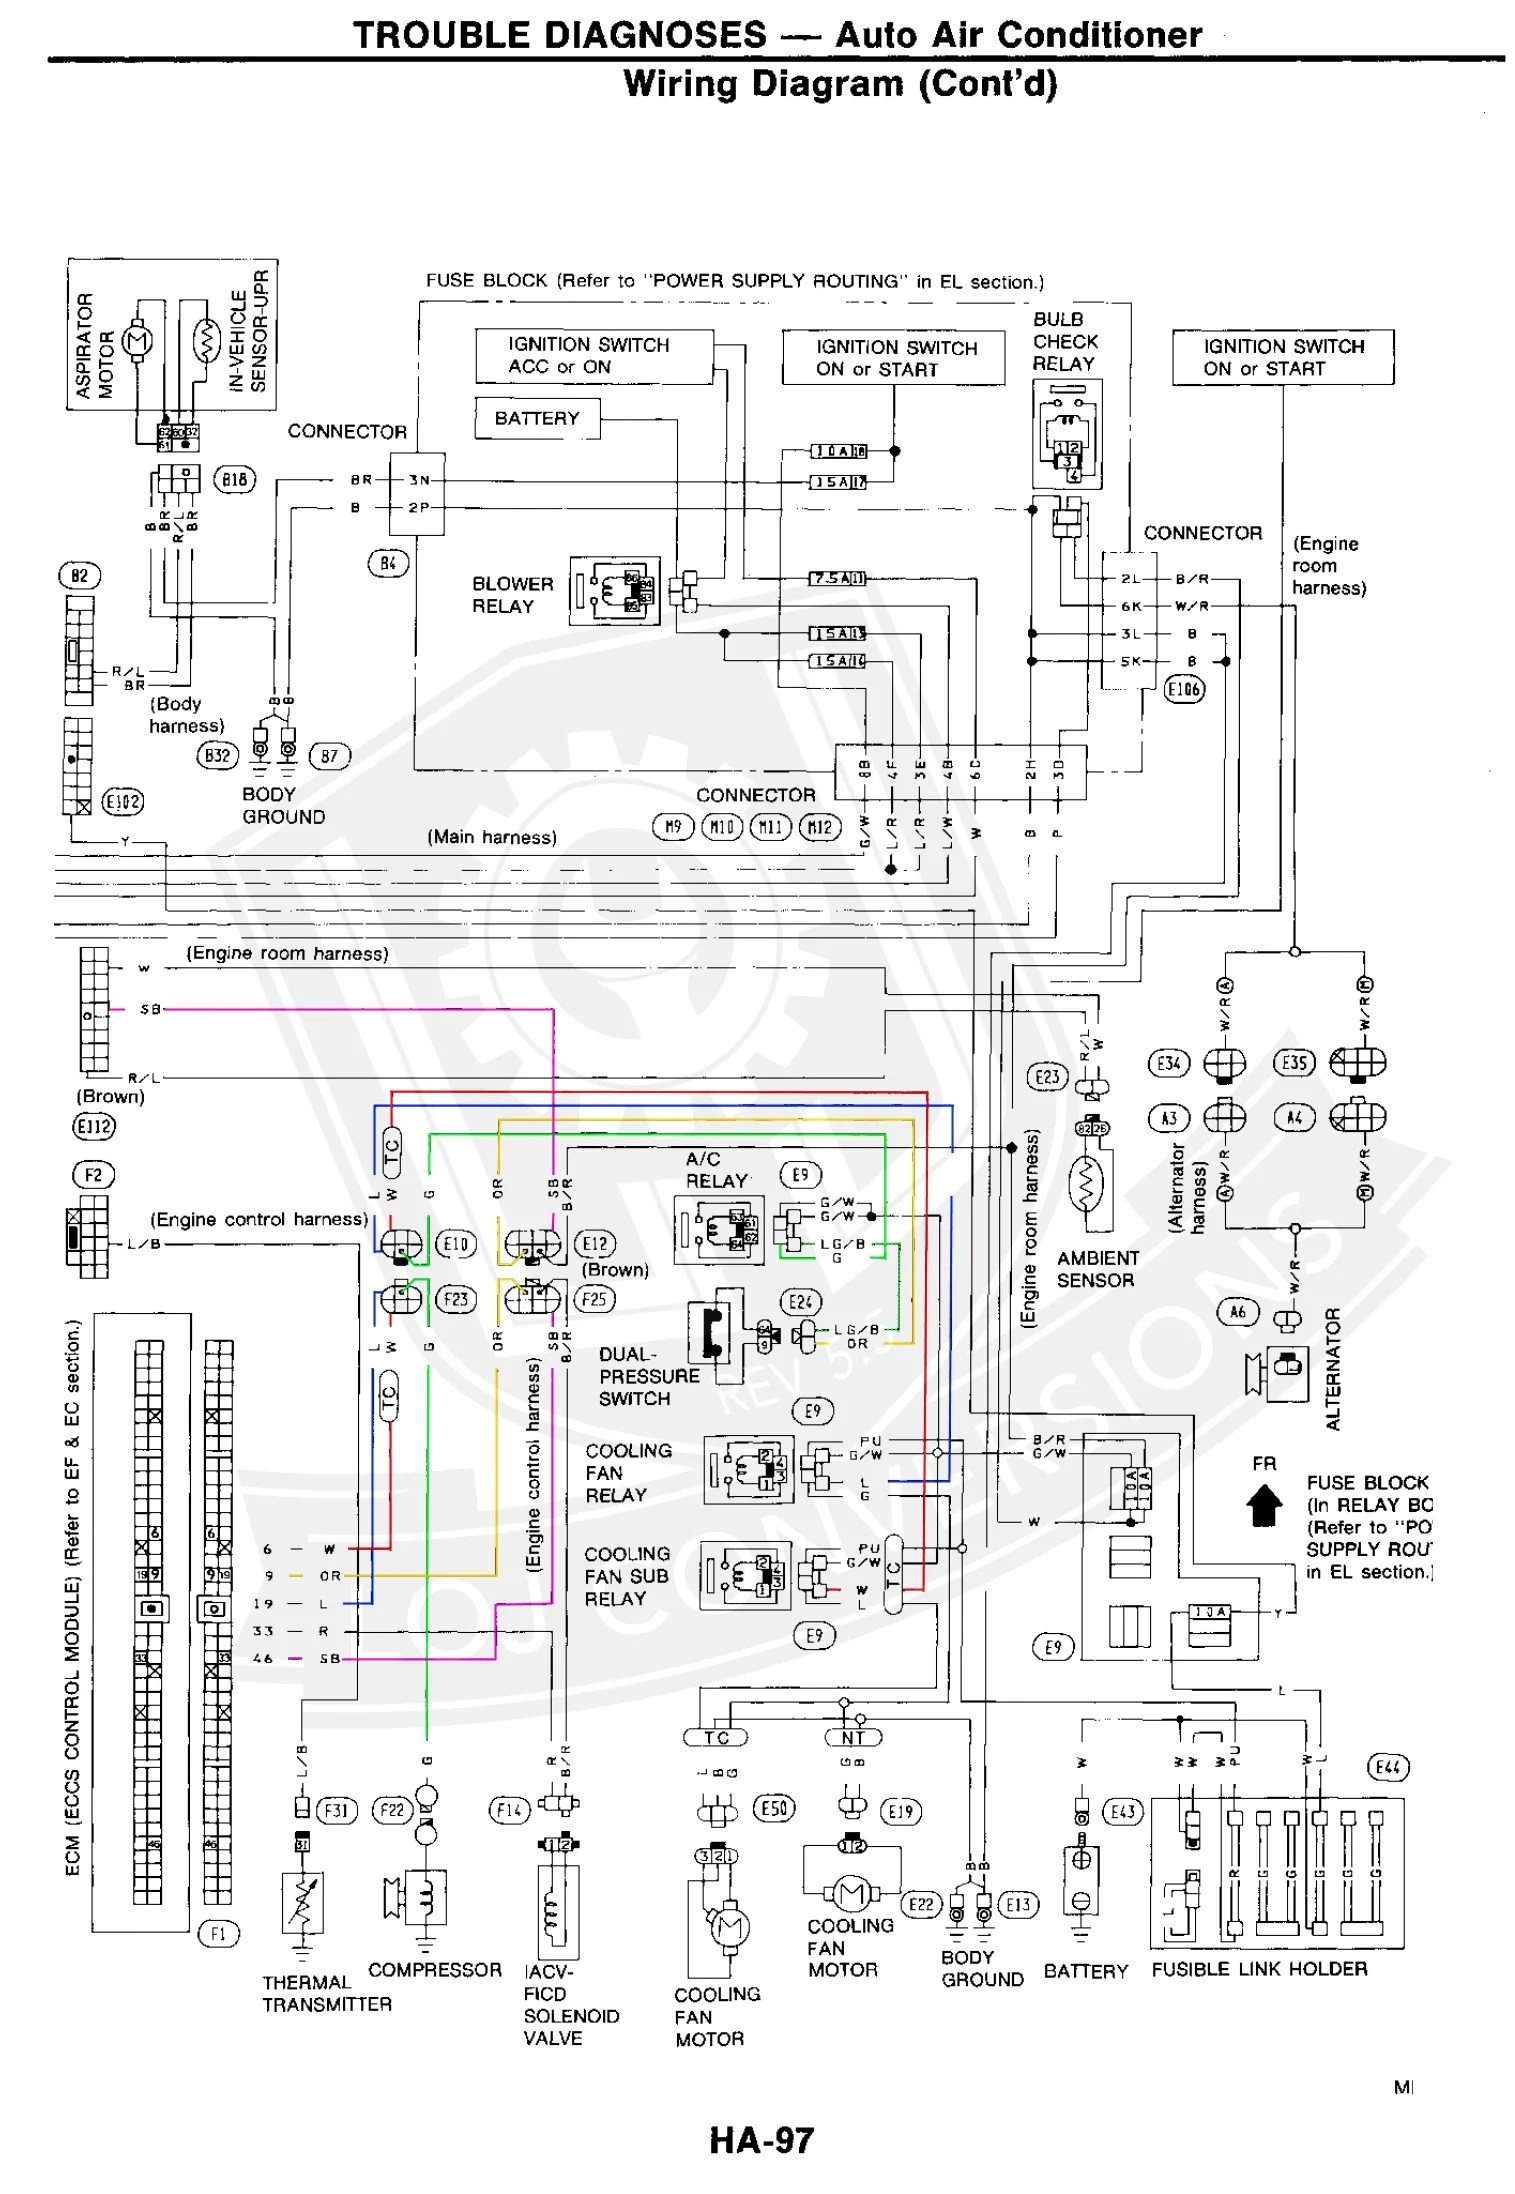 medium resolution of 1990 240sx wiring diagram schematic data wiring diagram schema 1990 240sx black 1990 240sx efi diagram